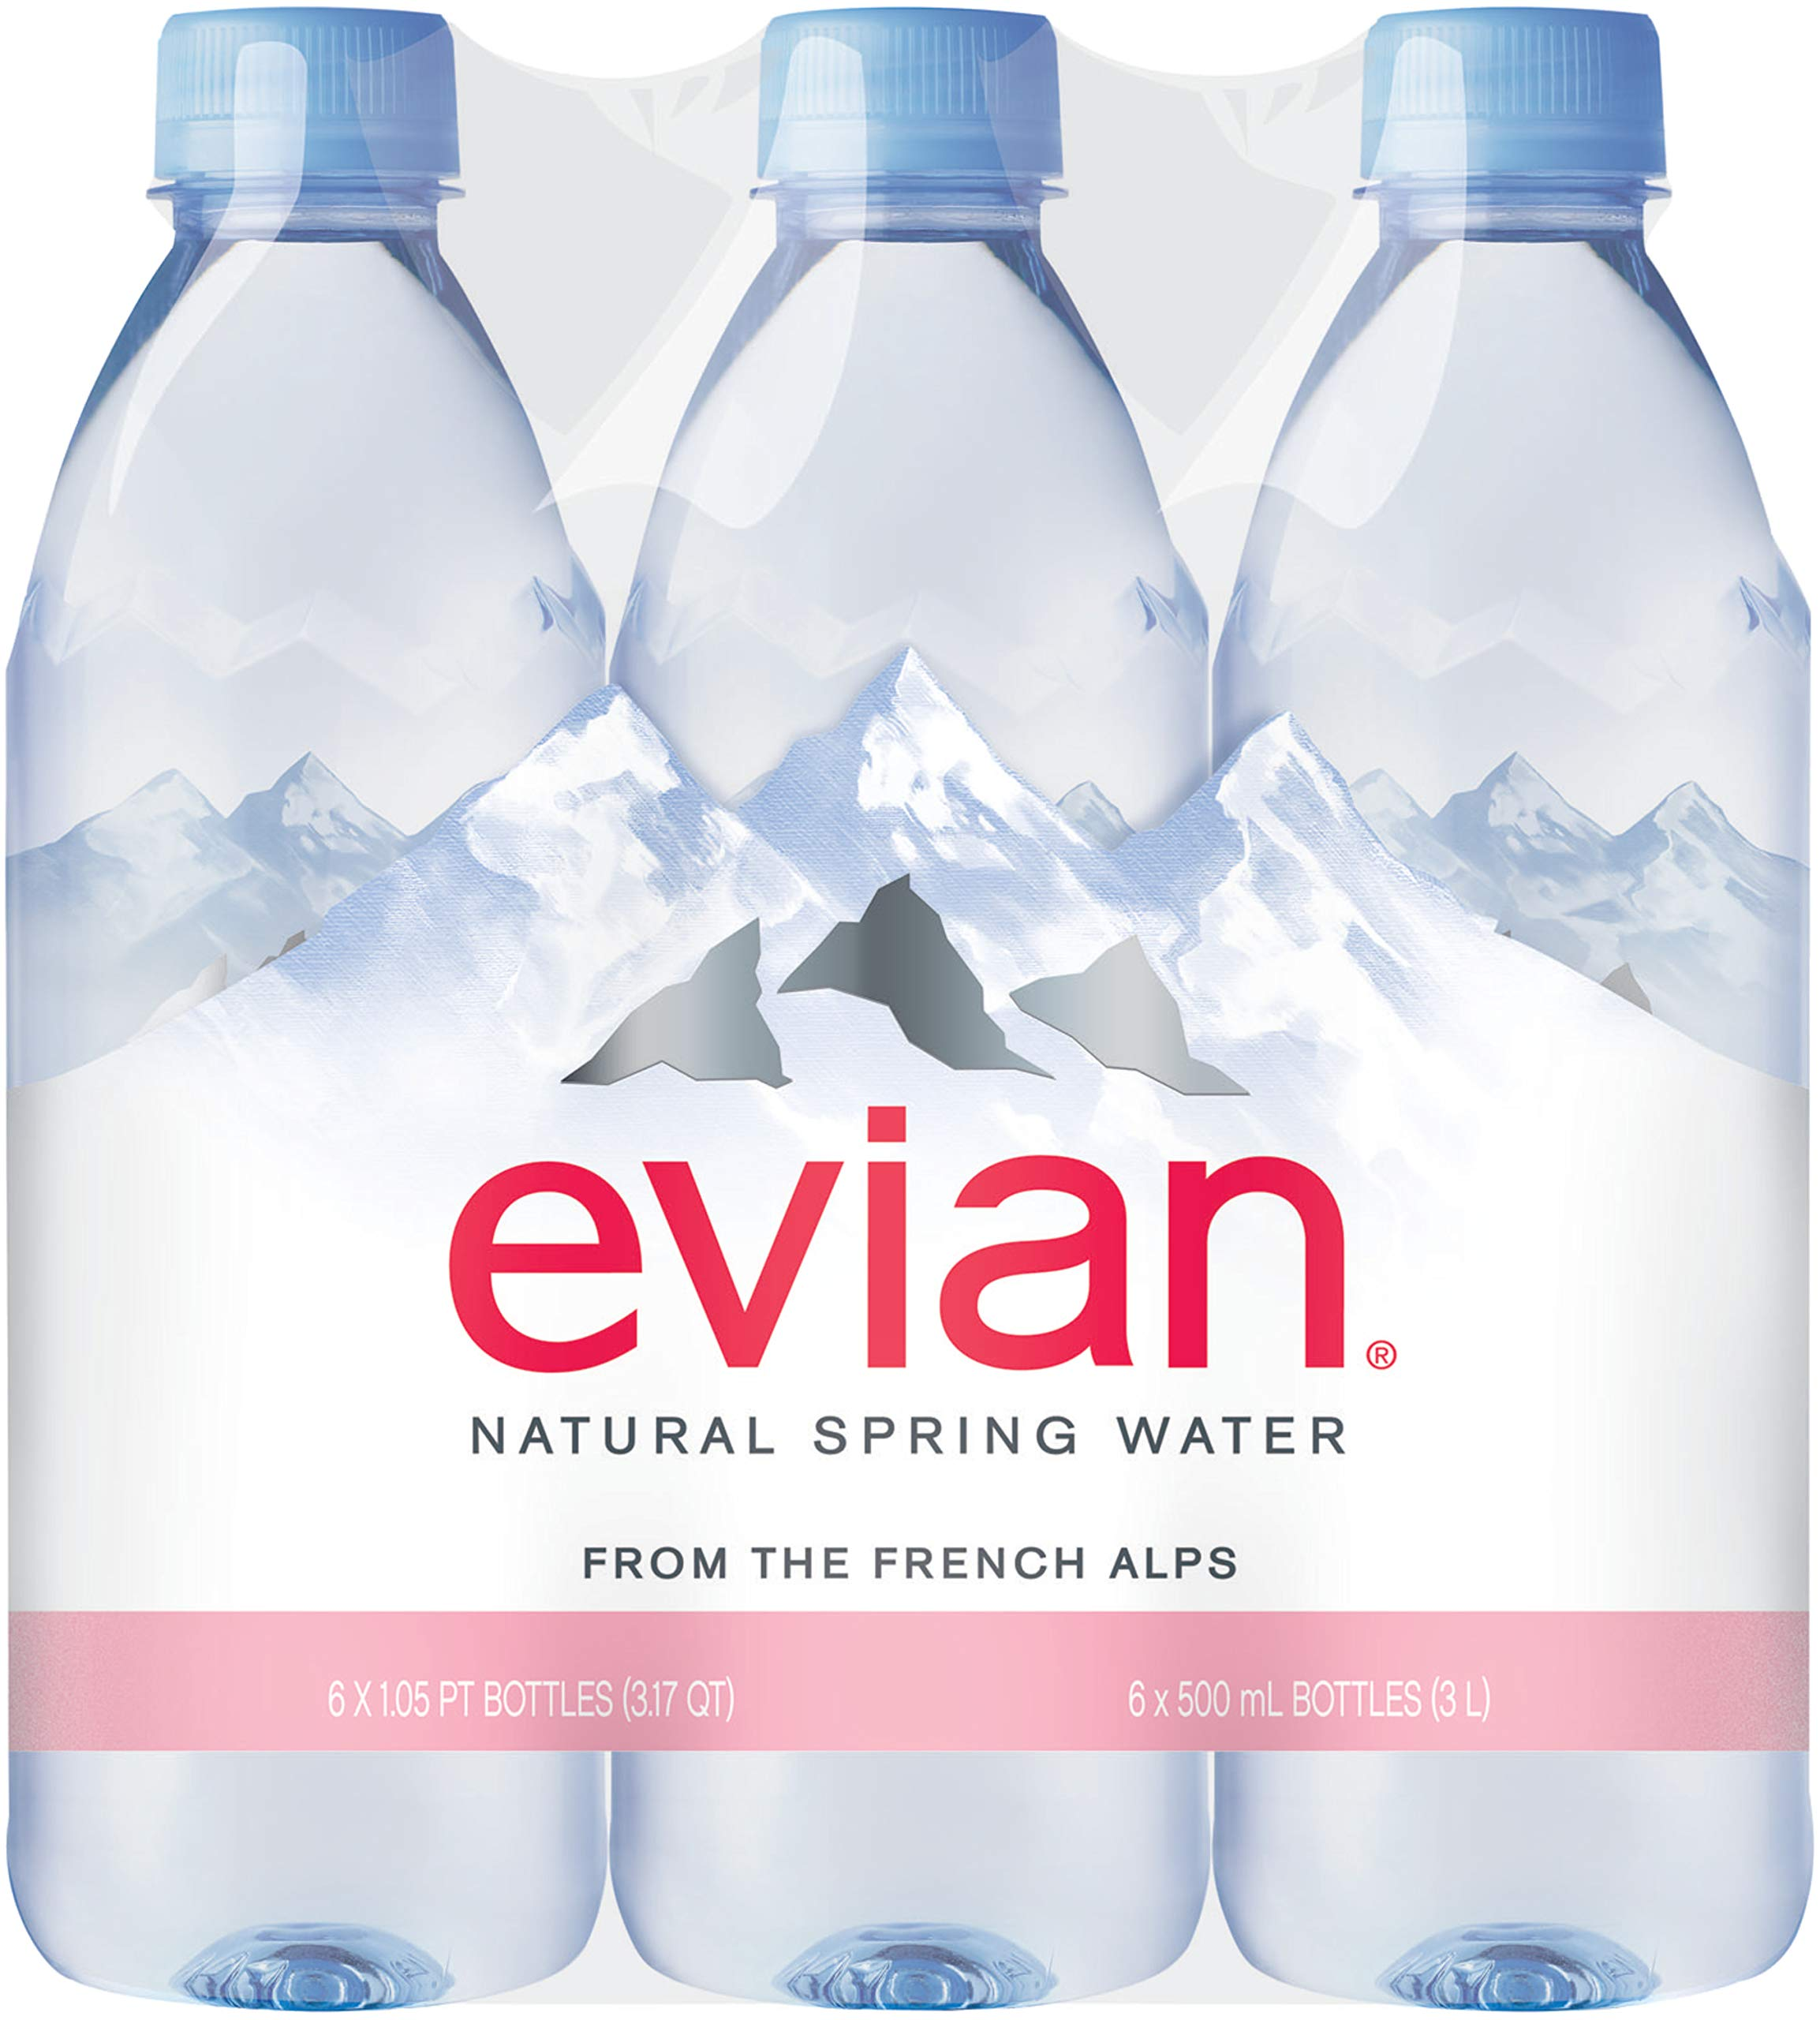 evian Natural Spring Water Bottled  in Individual-Sized Bottles, 16.9 Fl Oz (Pack of 6) by evian